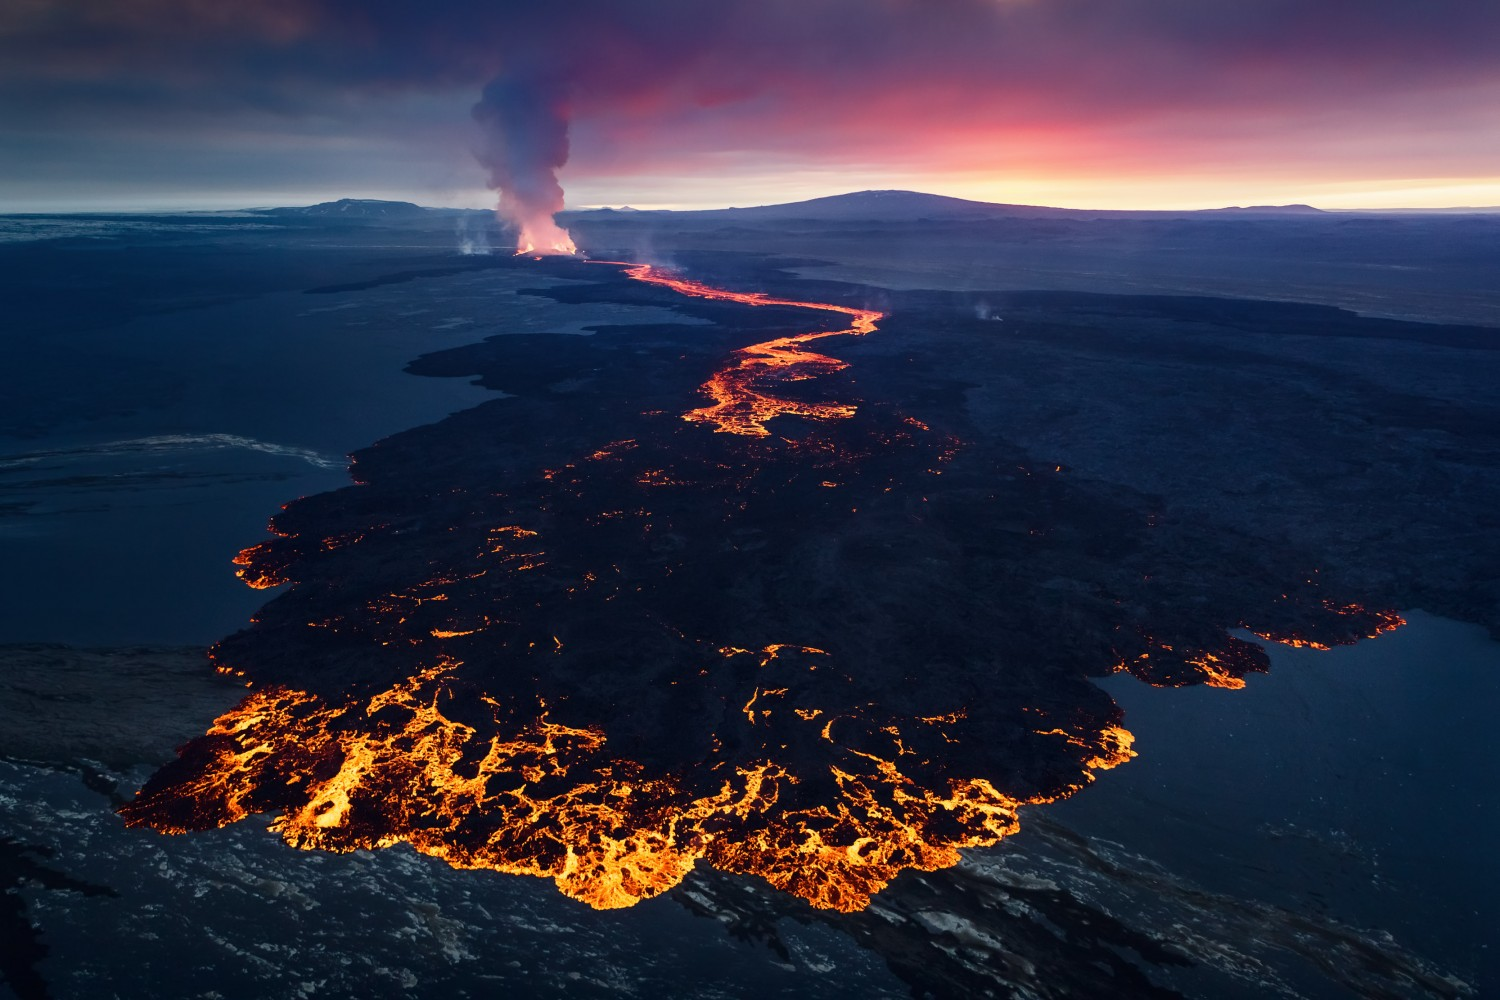 Tips & Gear For Photographing Volcanoes & Lava Flow